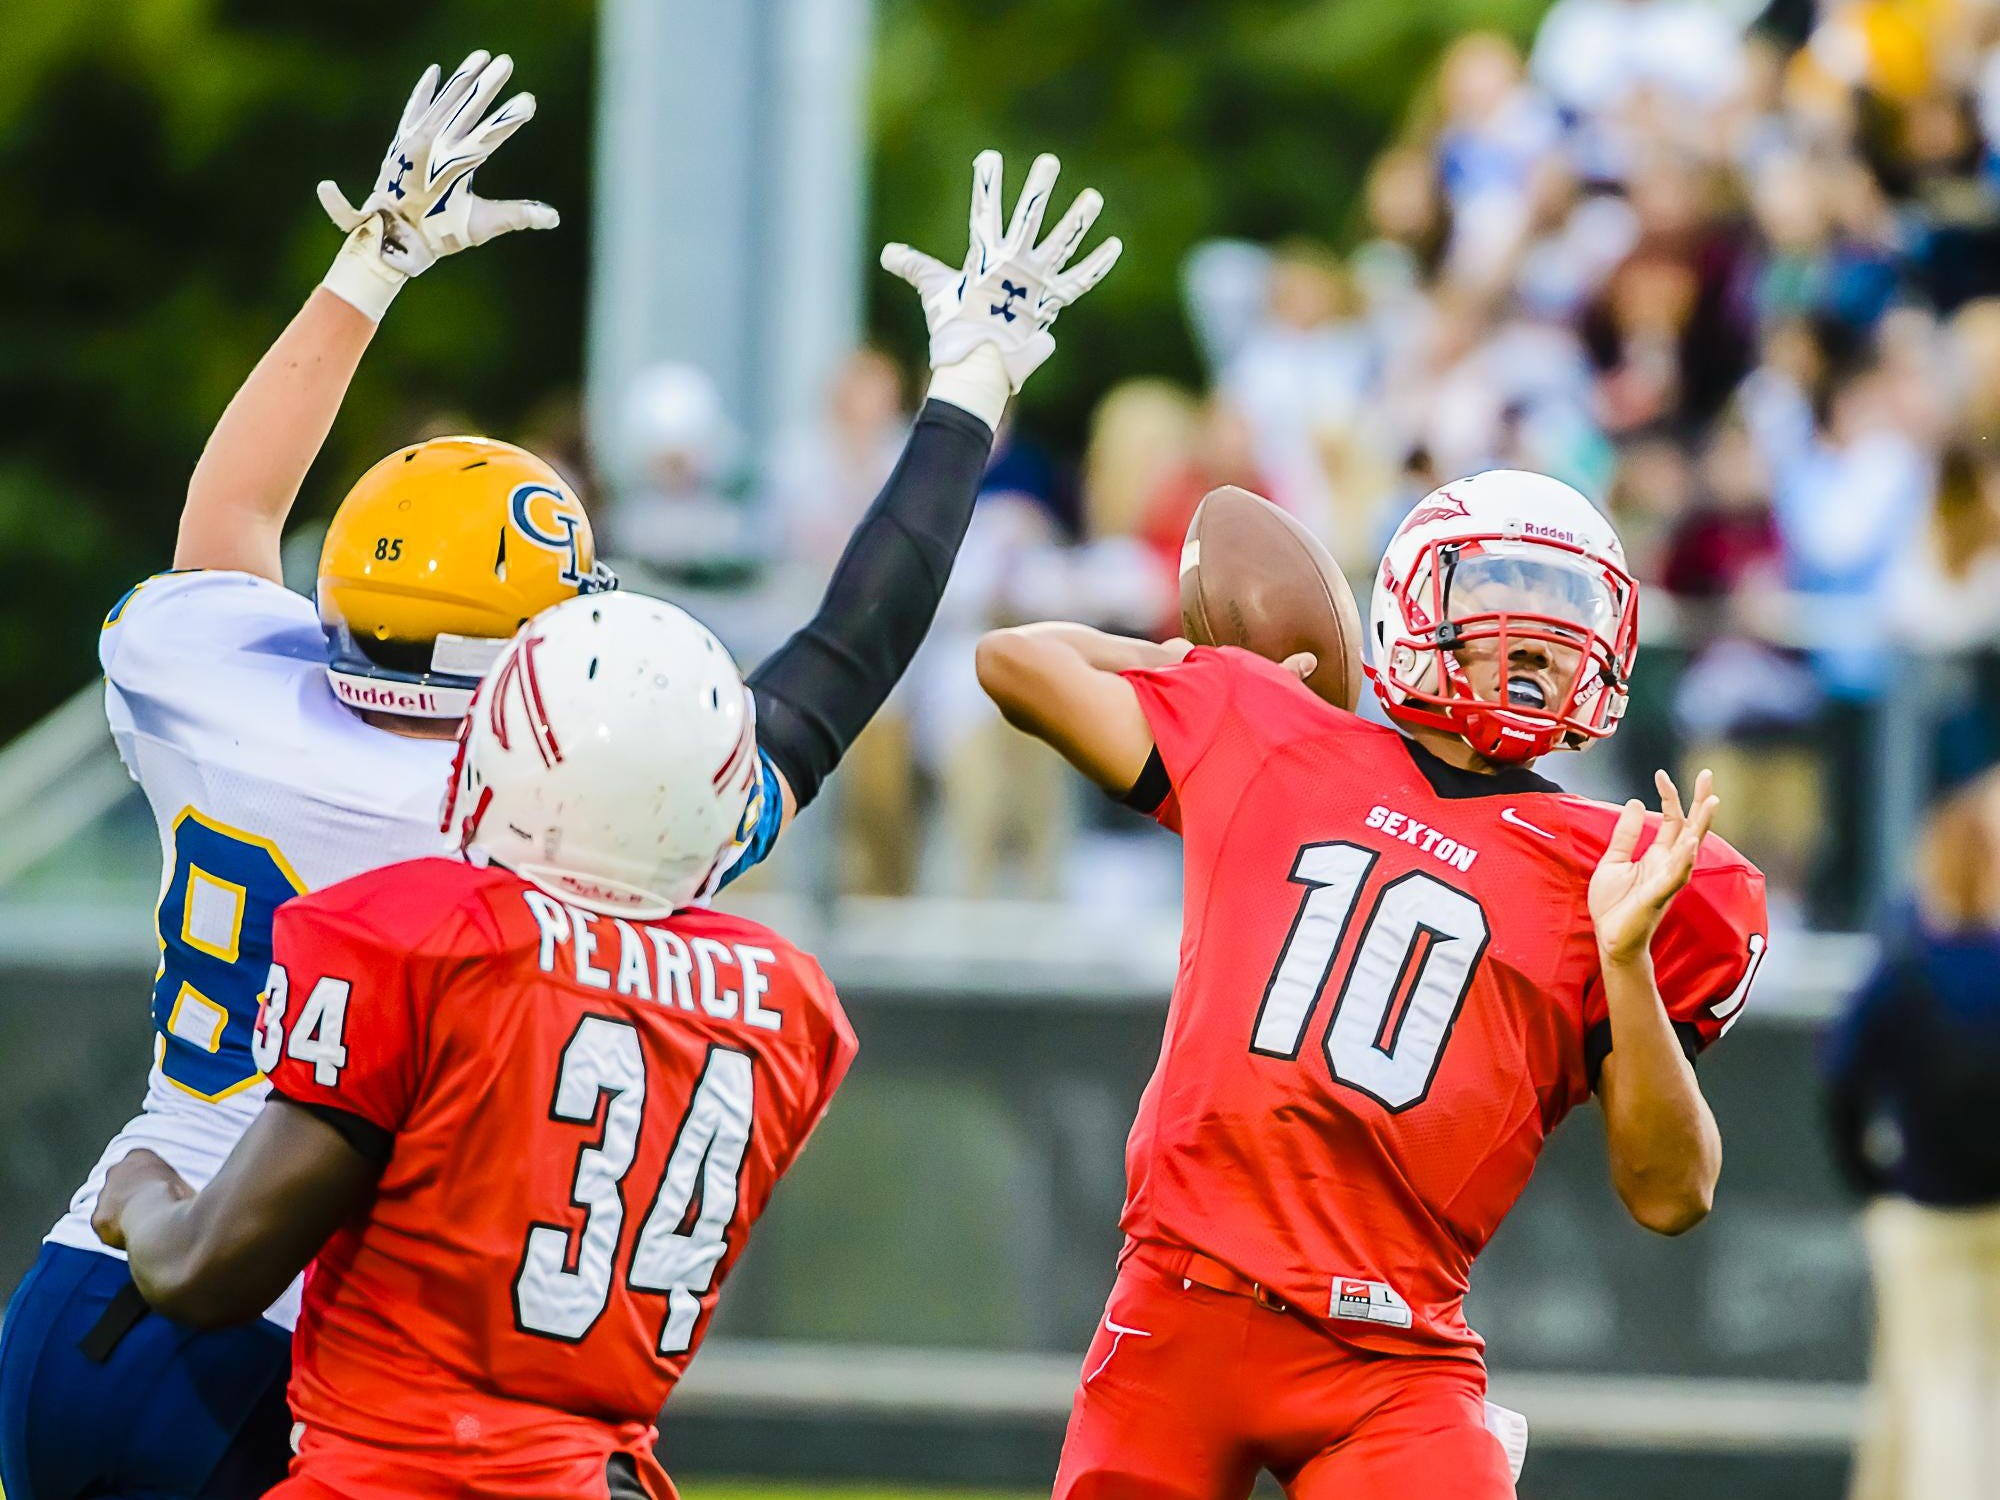 Sexton quarterback Mike Lynn III ,10, passes to teammate Devin Taylor for a touchdown while under pressure from a Grand Ledge defender in the 1st quarter of their game Friday September 11, 2015 at Sexton High in Lansing. KEVIN W. FOWLER PHOTO